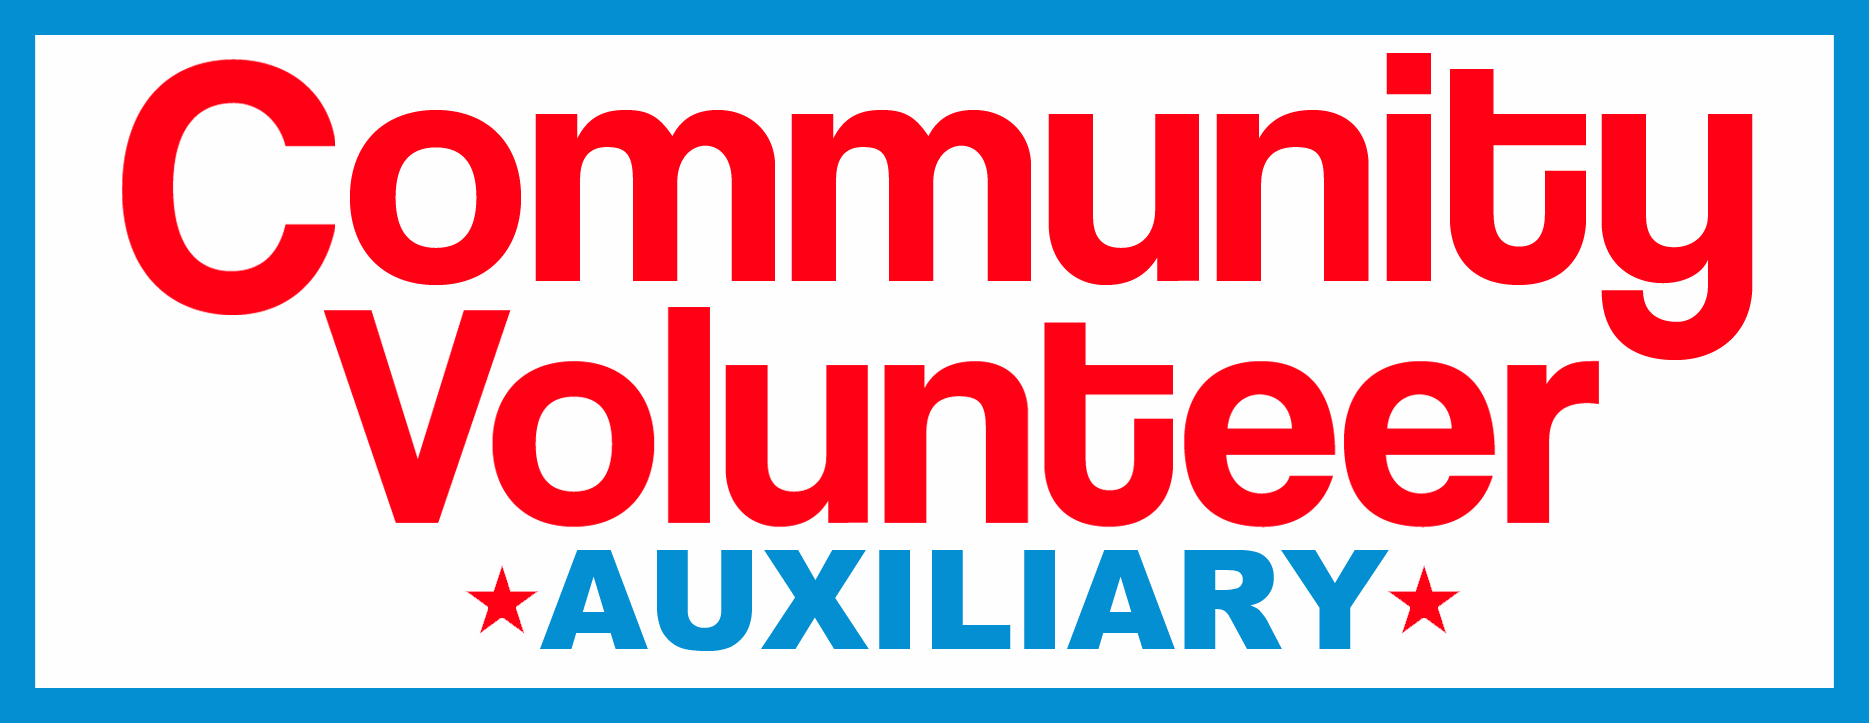 COMMUNITY VOLUNTEER AUXILIARY